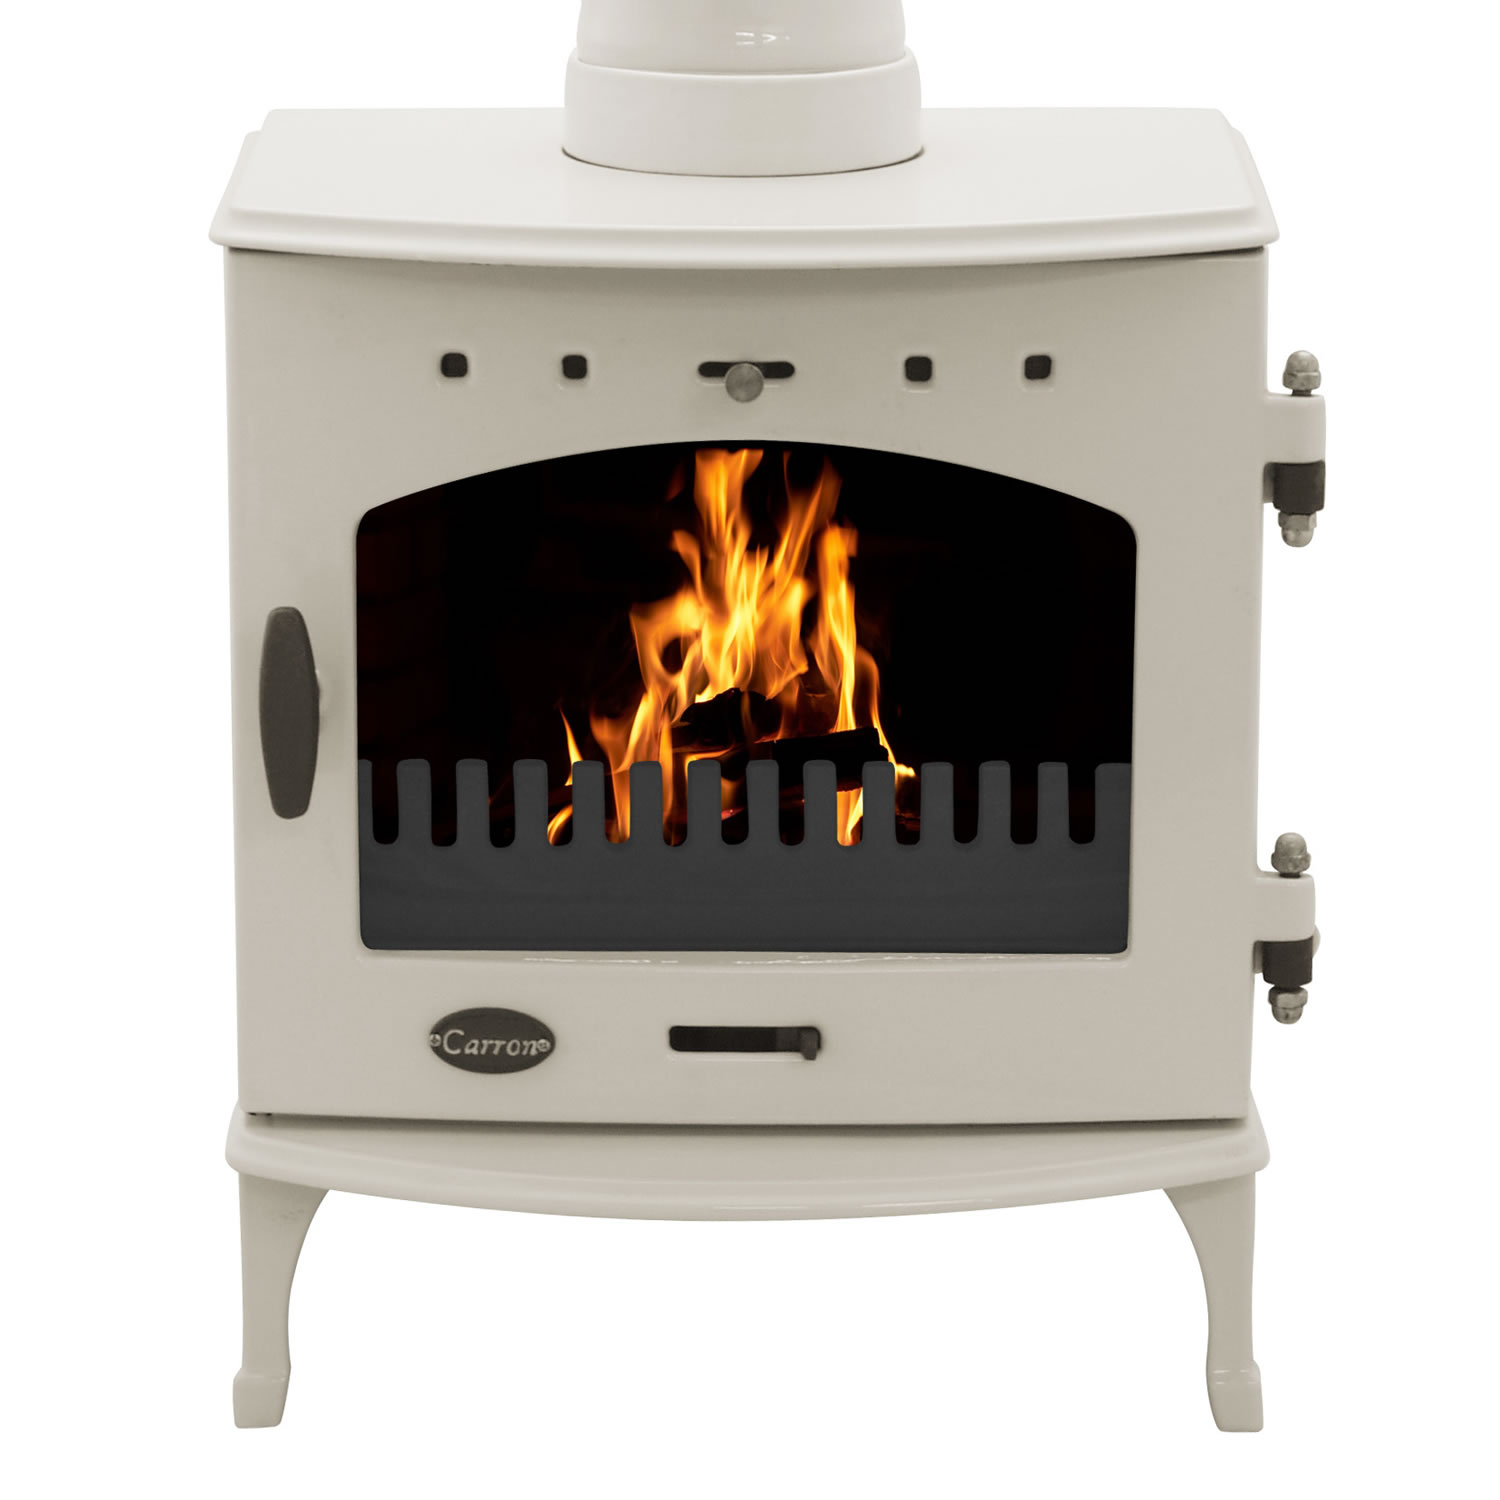 4.7KW Carron Cream Enamel SE Multi Fuel Stove